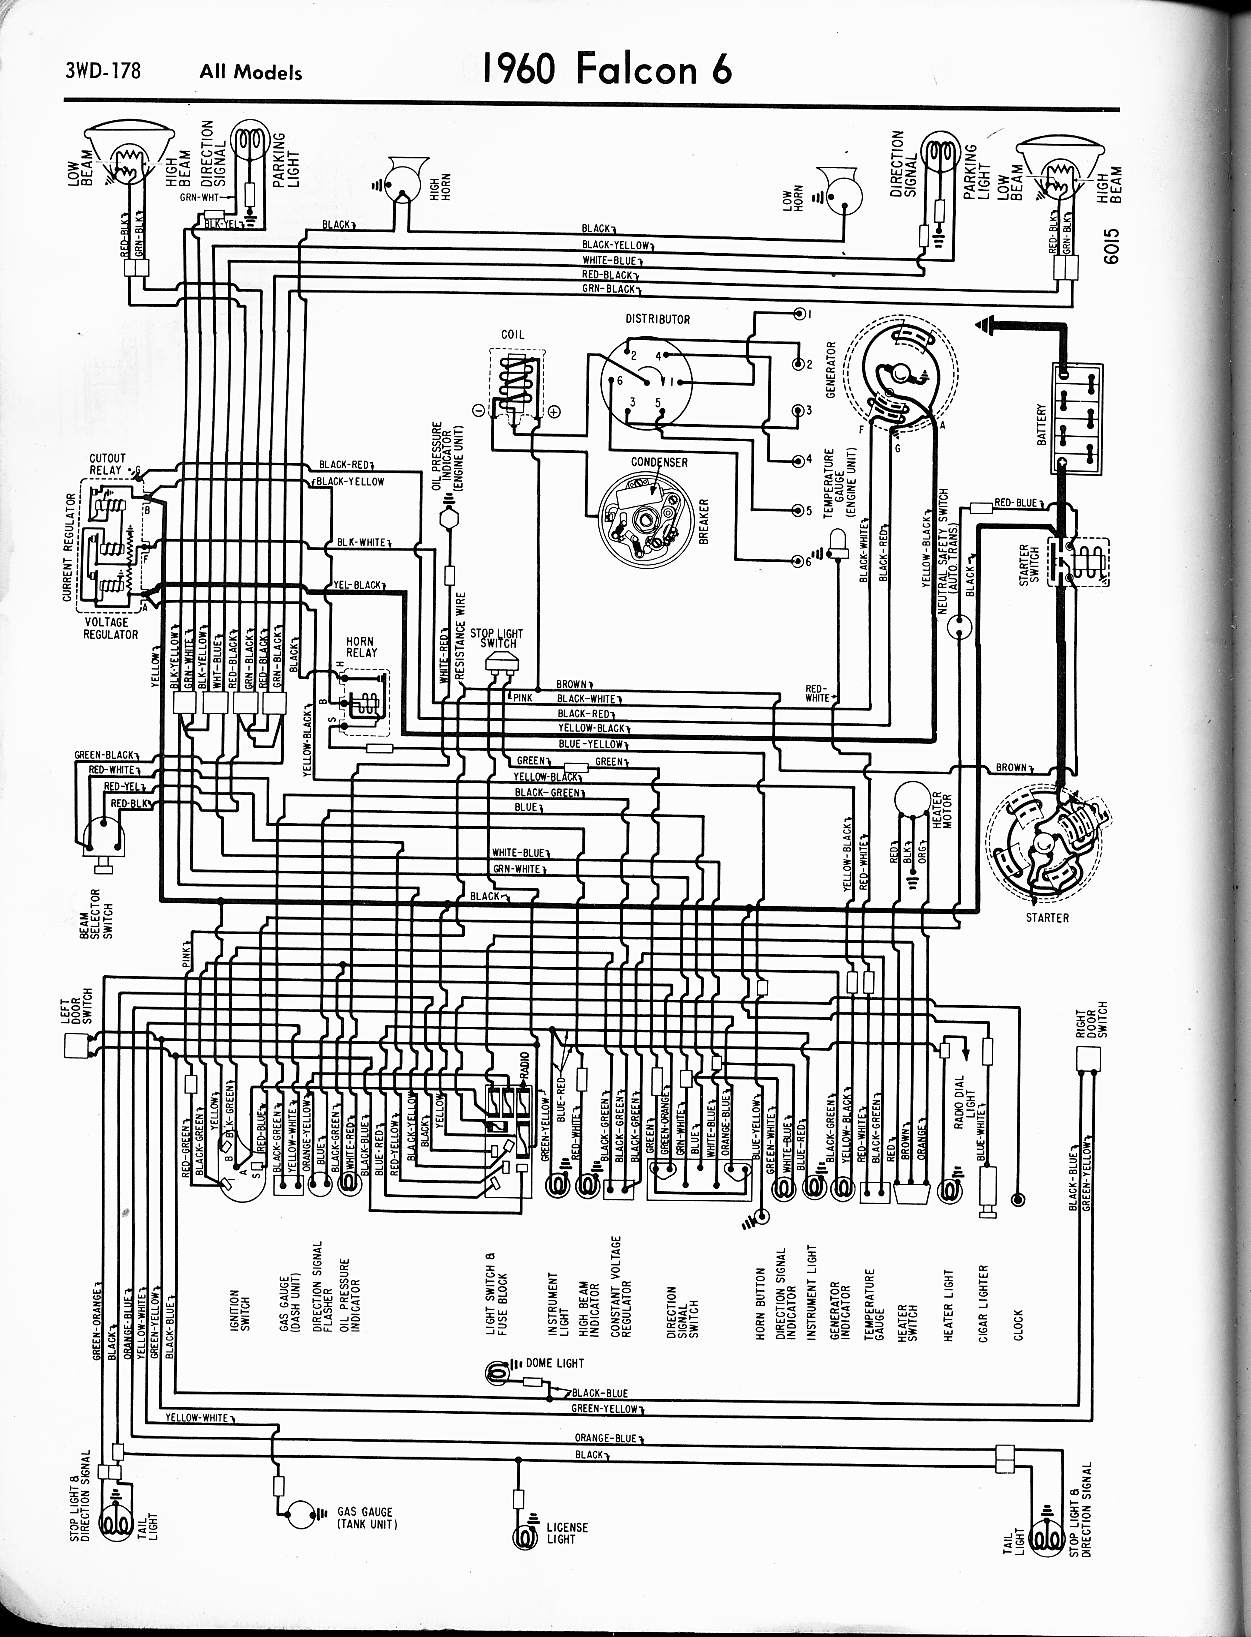 Viewtopic Mwire5765178: Wiring Diagram 1965 Ford Falcon Club Wagon At Nayabfun.com